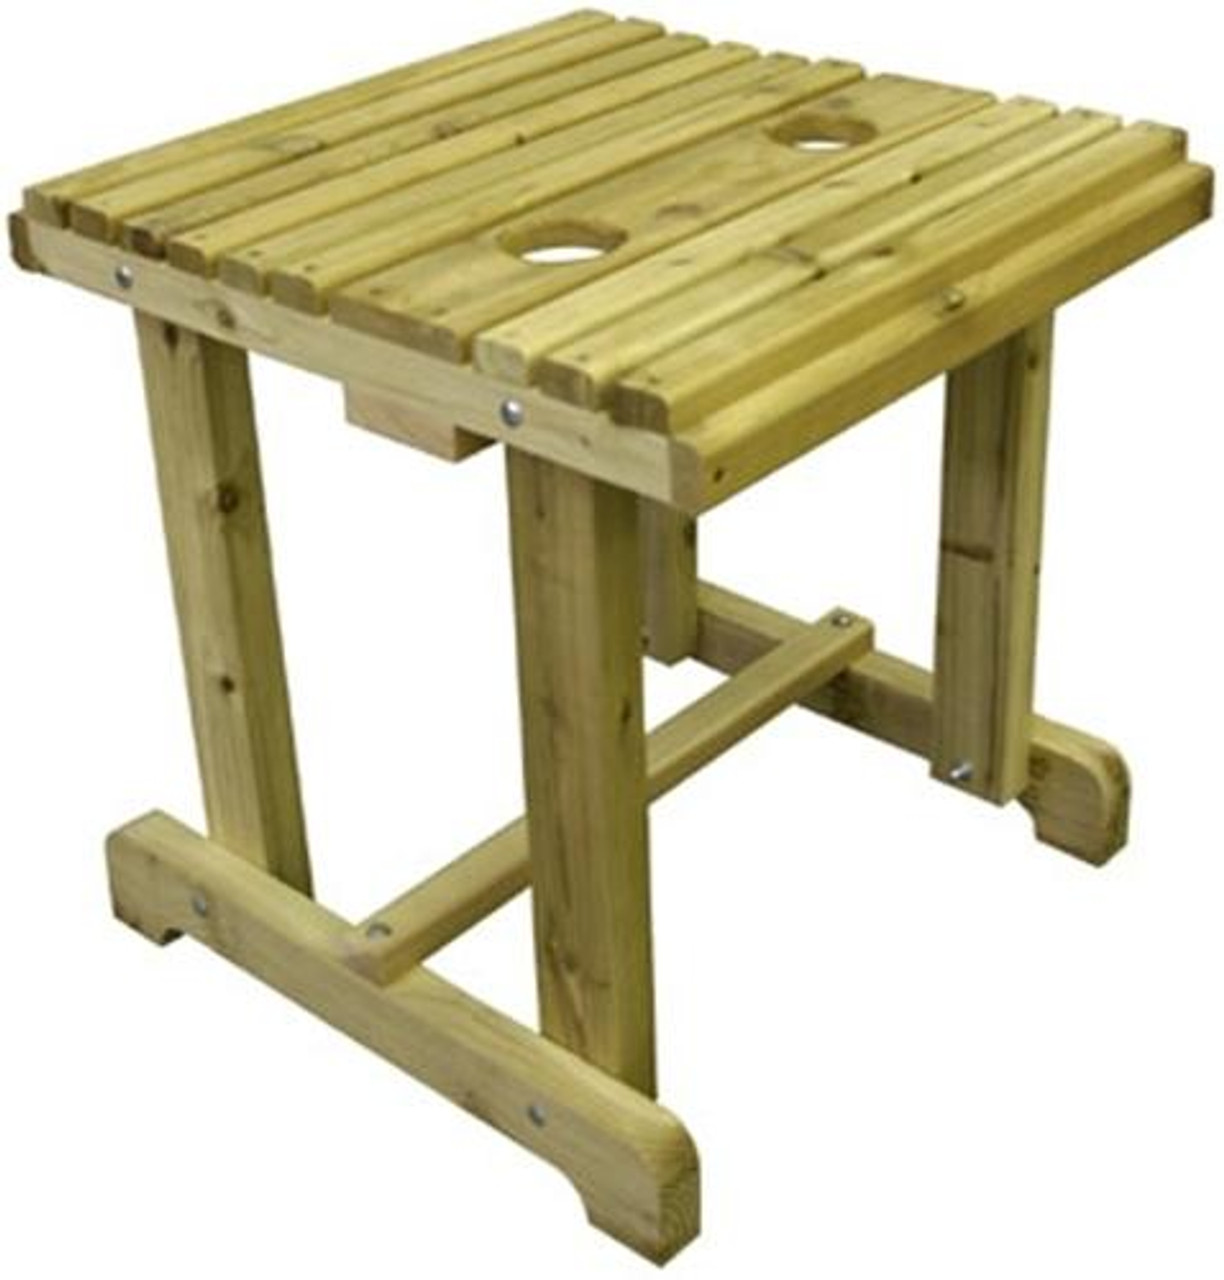 Cherry Tree Toys Outdoor End Table Plan